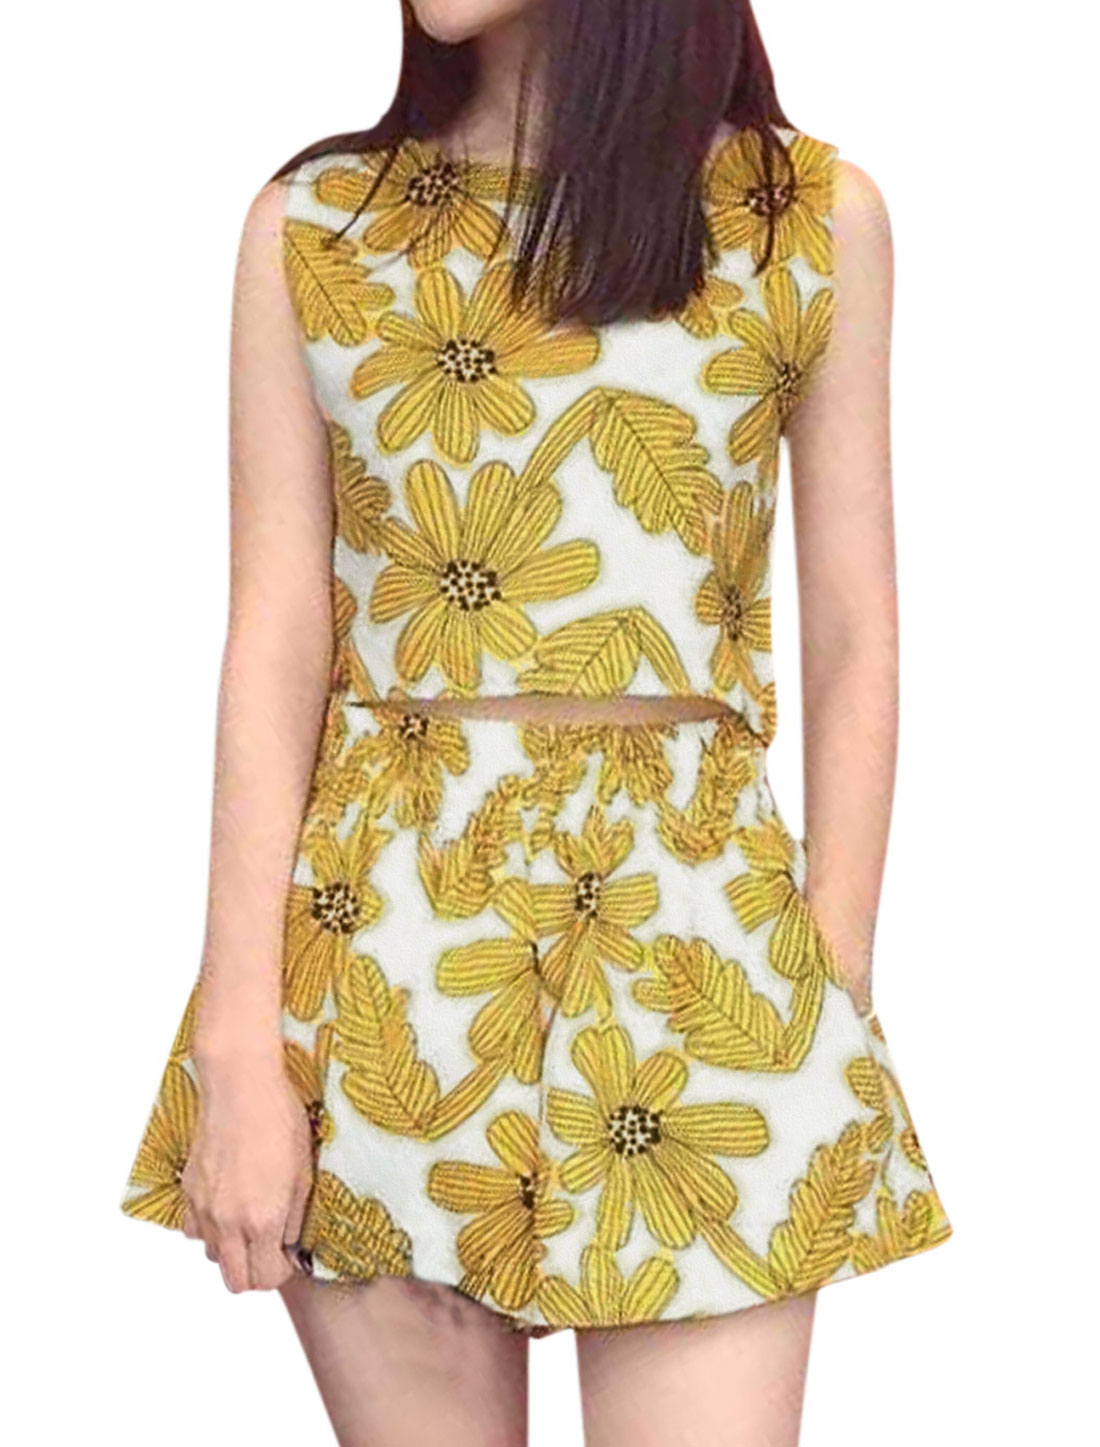 Woman Floral Prints Sleeveless Top w Casual Flare Shorts Sets Yellow White S